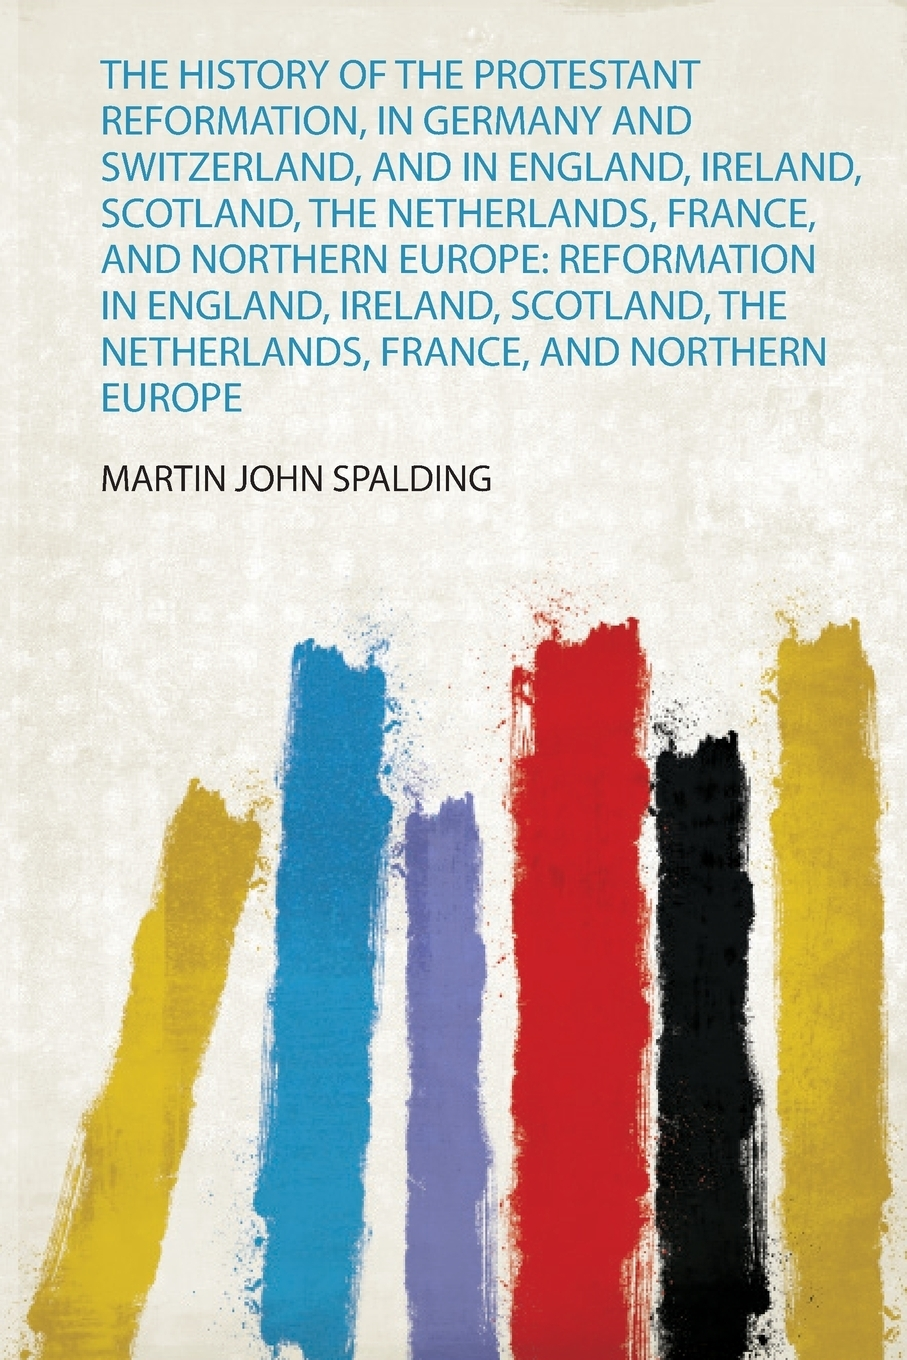 The History of the Protestant Reformation, in Germany and Switzerland, and in England, Ireland, Scotland, the Netherlands, France, and Northern Europe. Reformation in England, Ireland, Scotland, the Netherlands, France, and Northern Europe aubrey lackington moore lectures and papers on the history of the reformation in england and on the